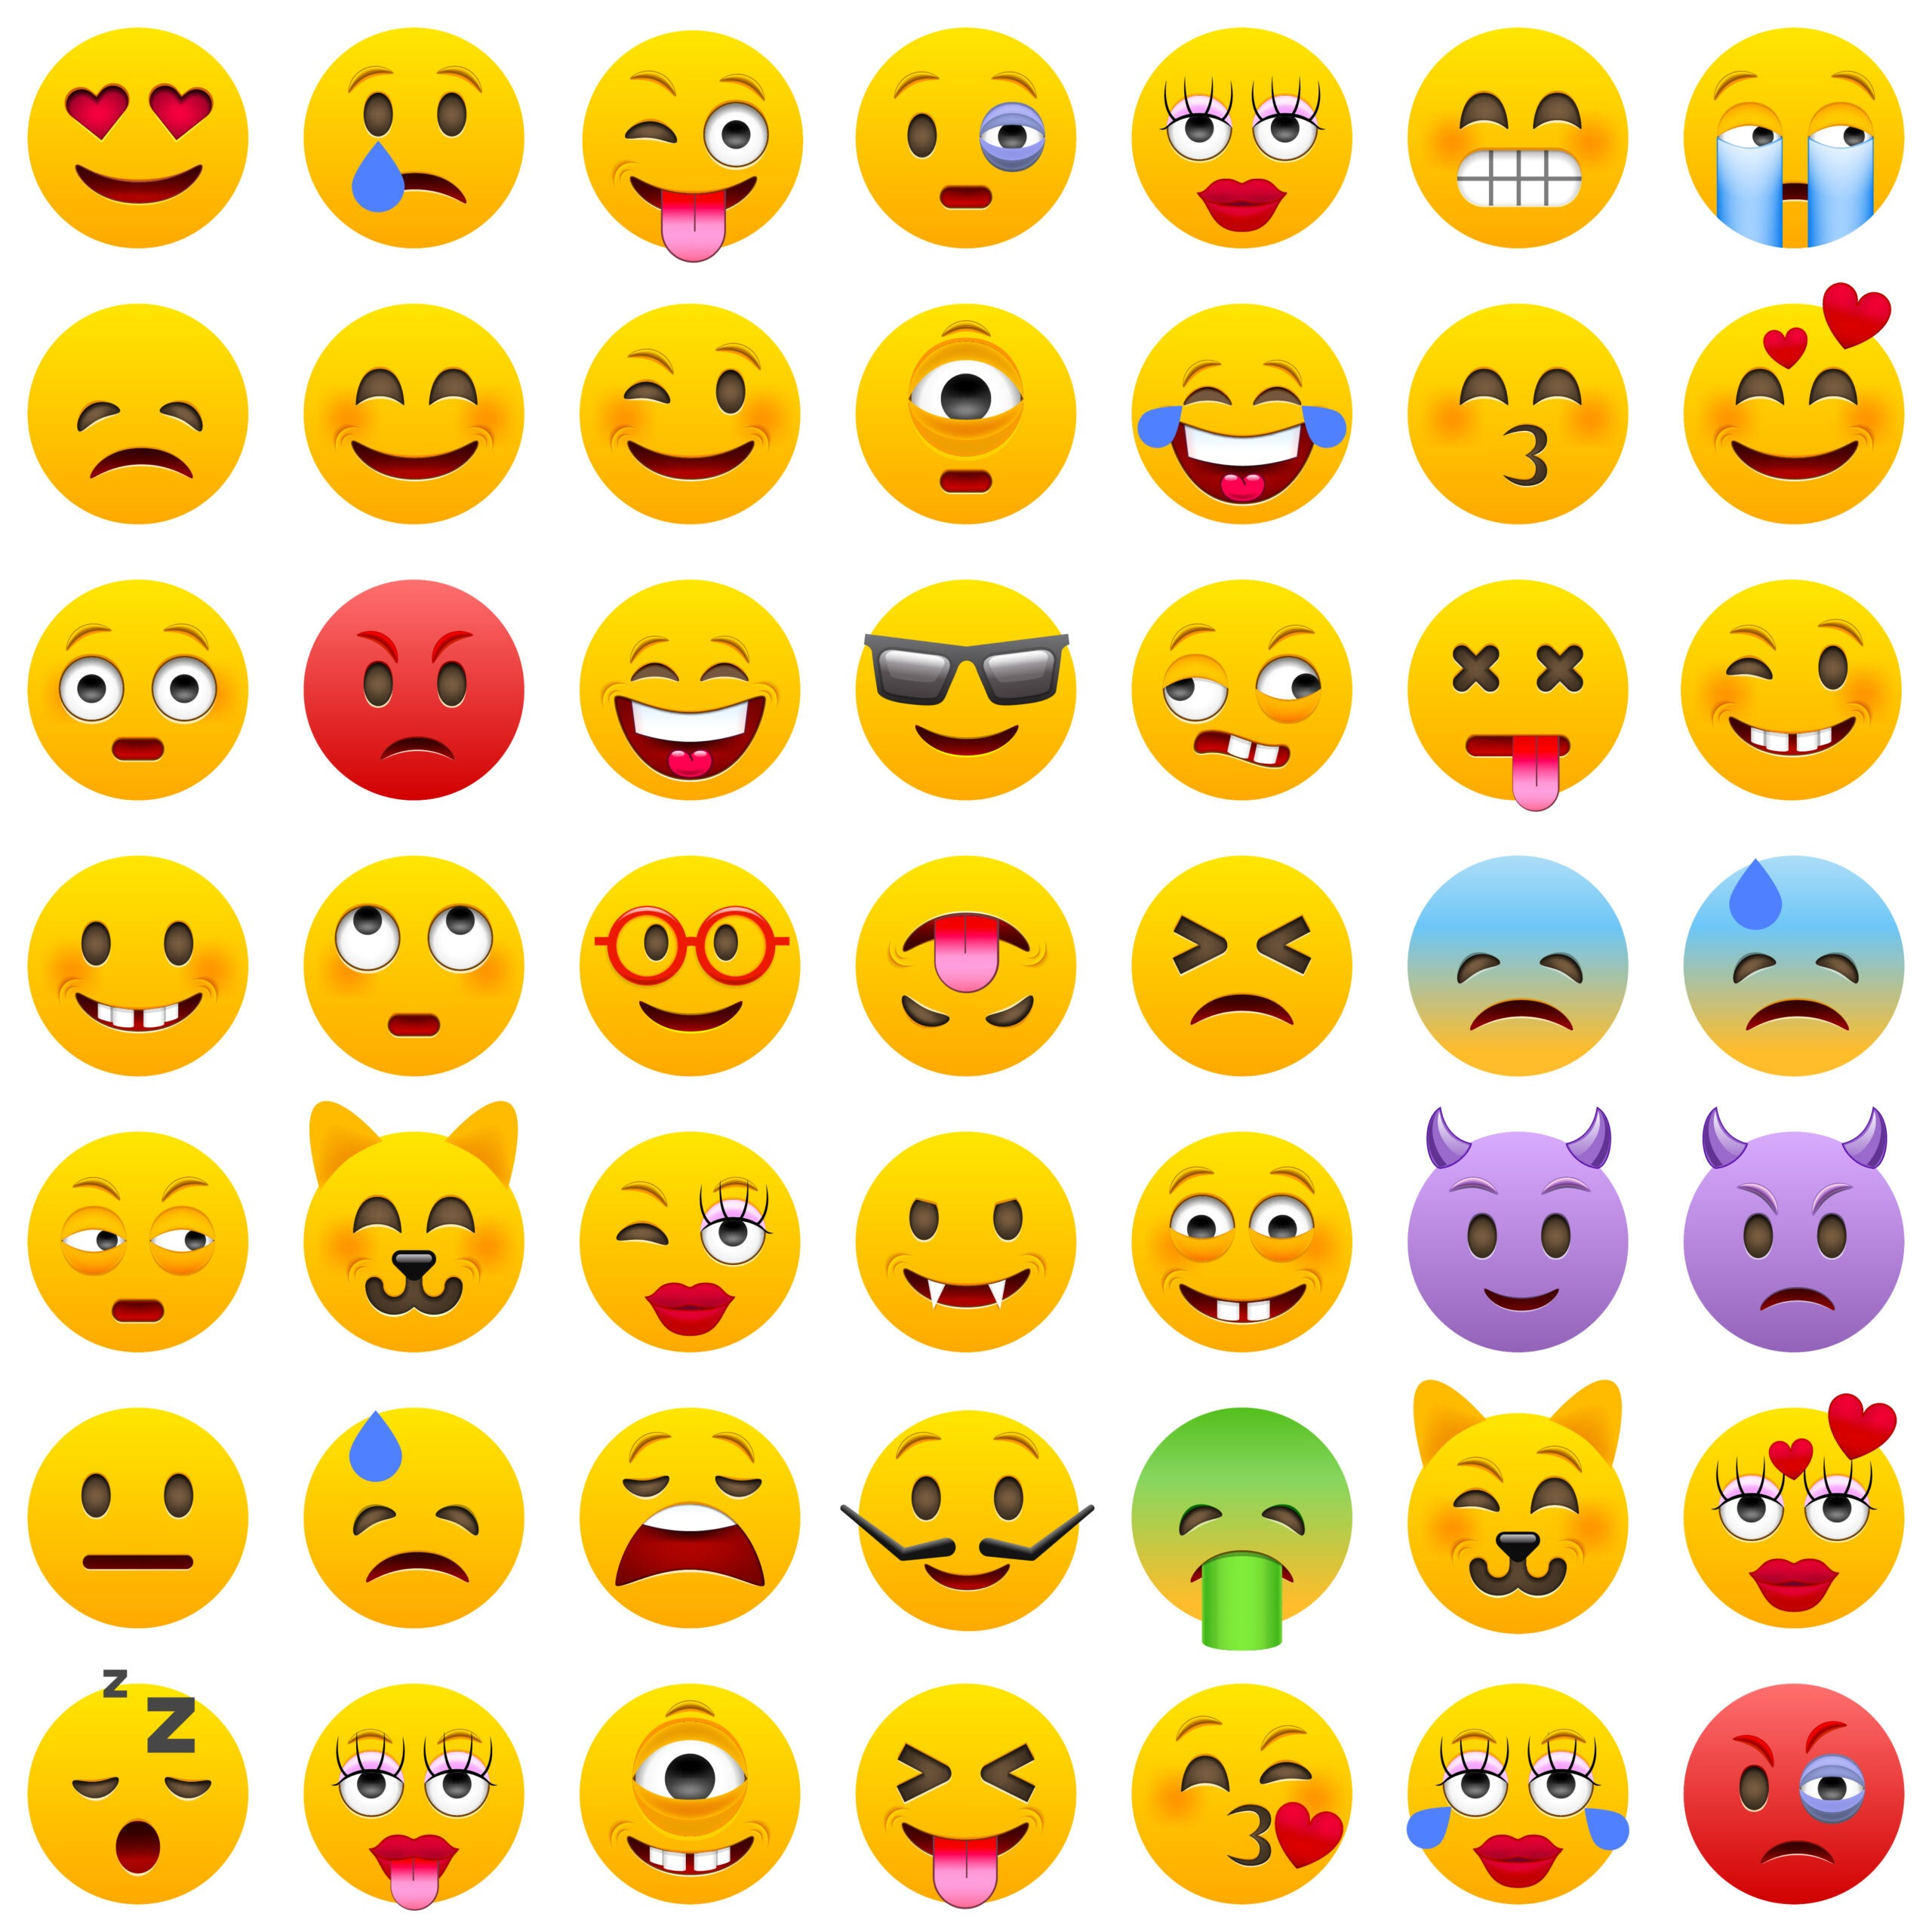 Here's how Apple can figure out which emojis are popular